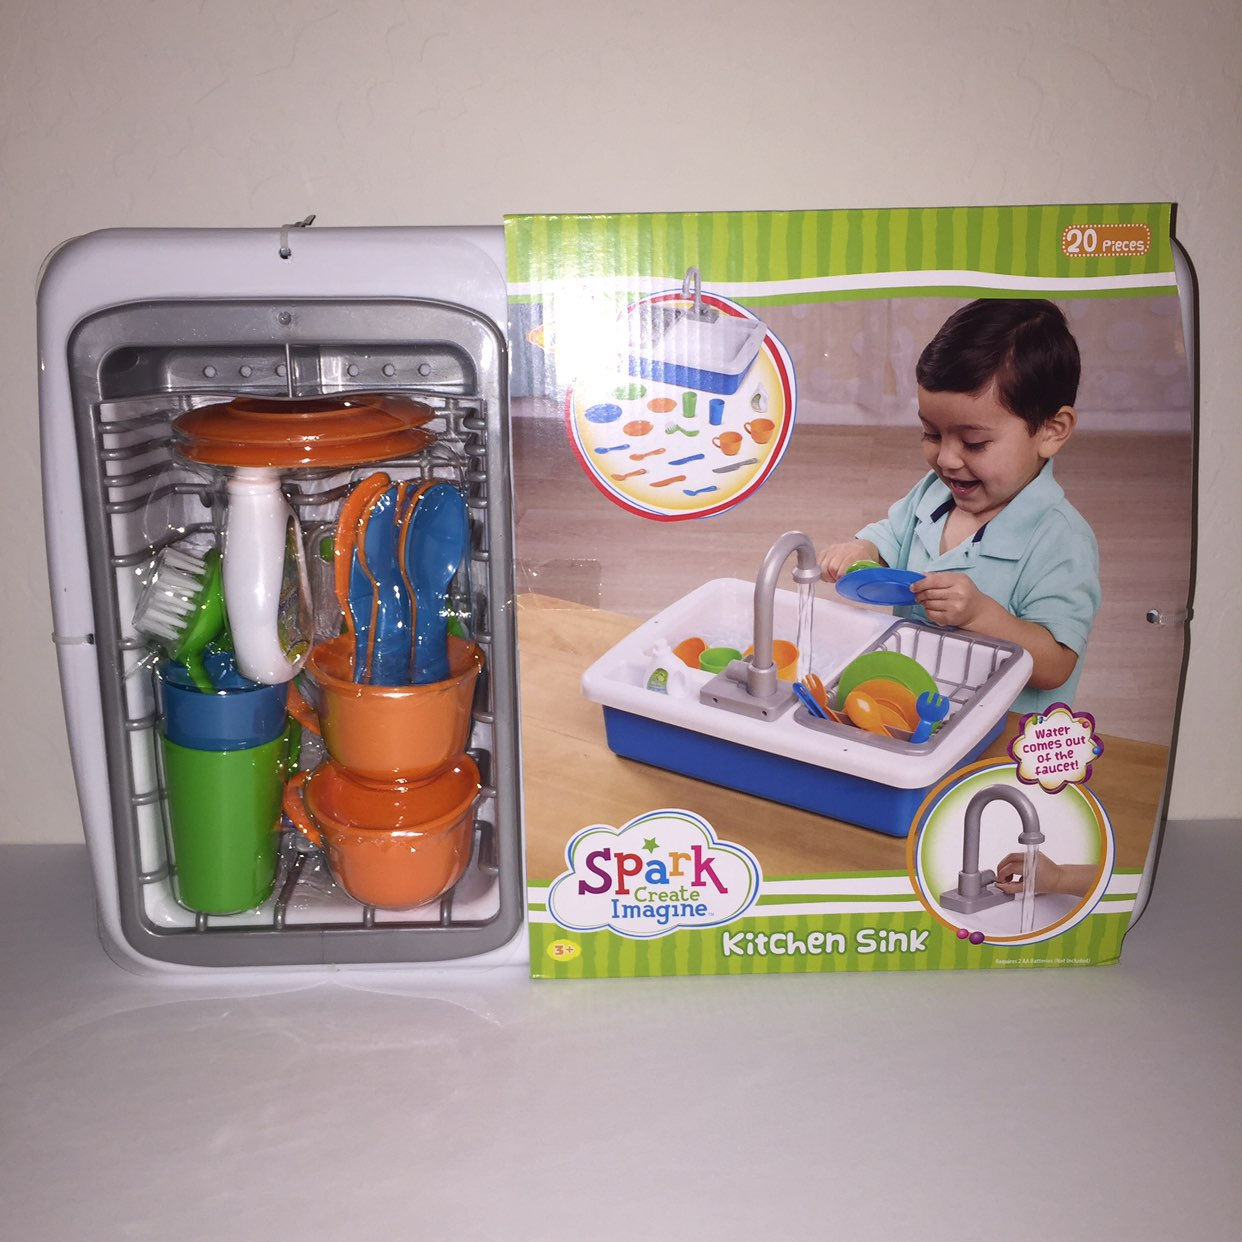 Spark Kitchen Sink Running Water Toy Mercari Buy Amp Sell